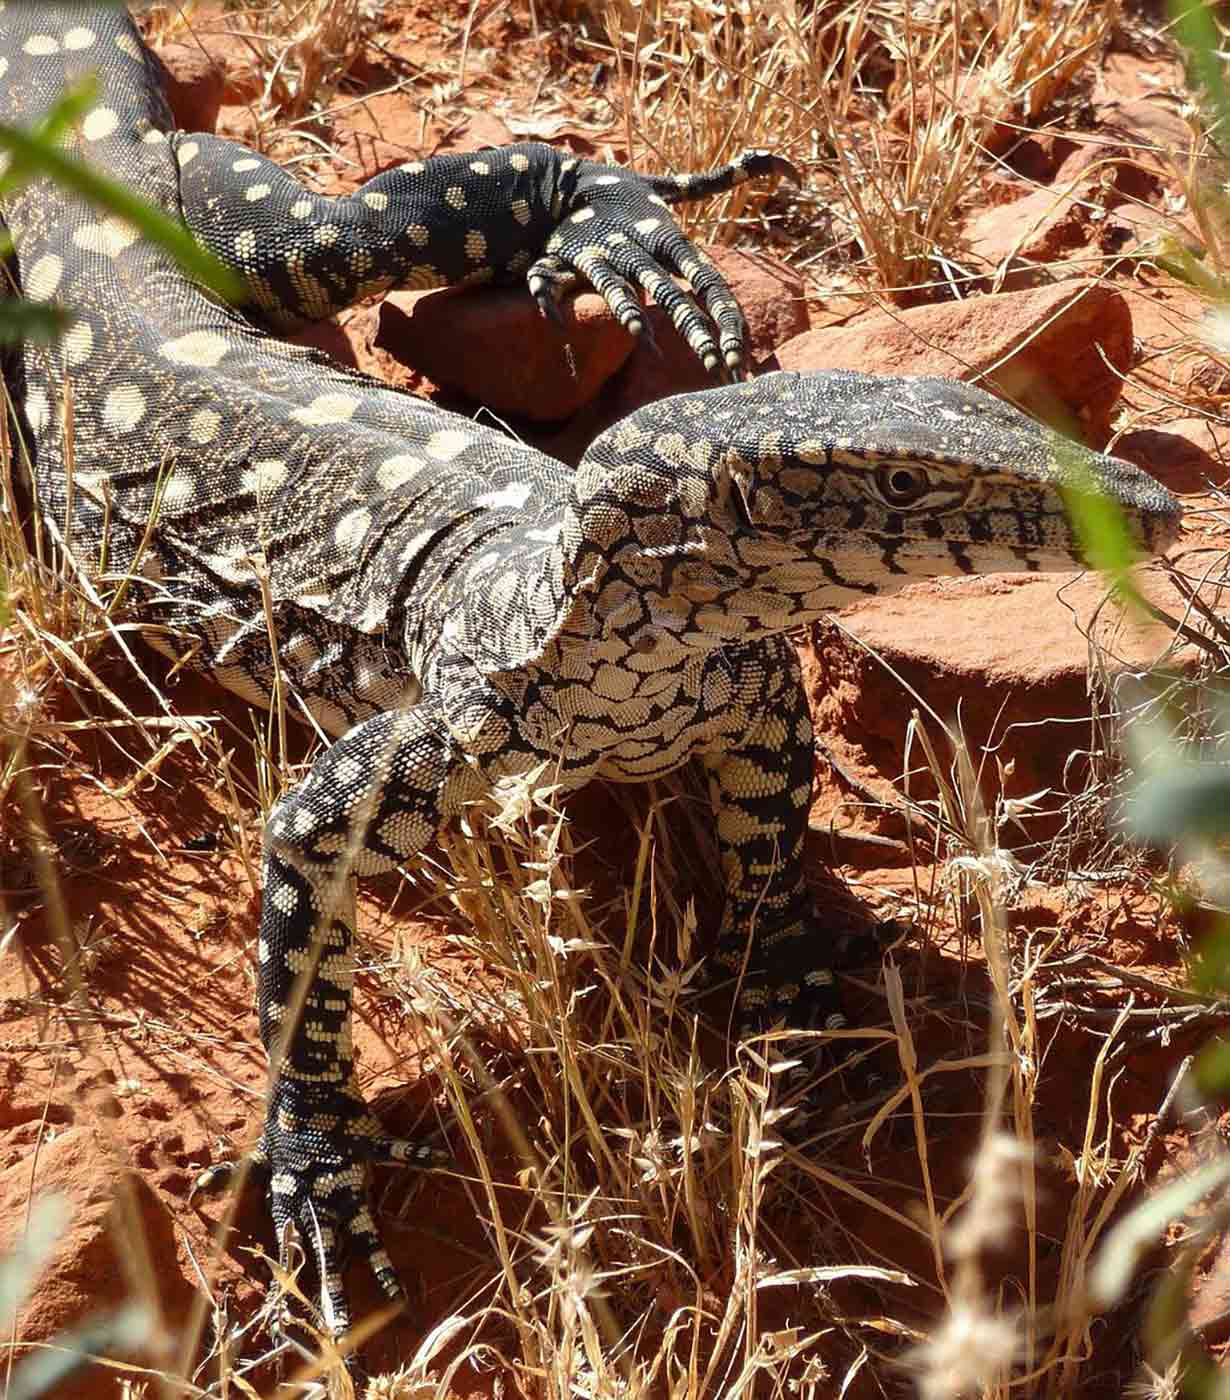 A grey-green lizard on rocky ground. - click to view larger image